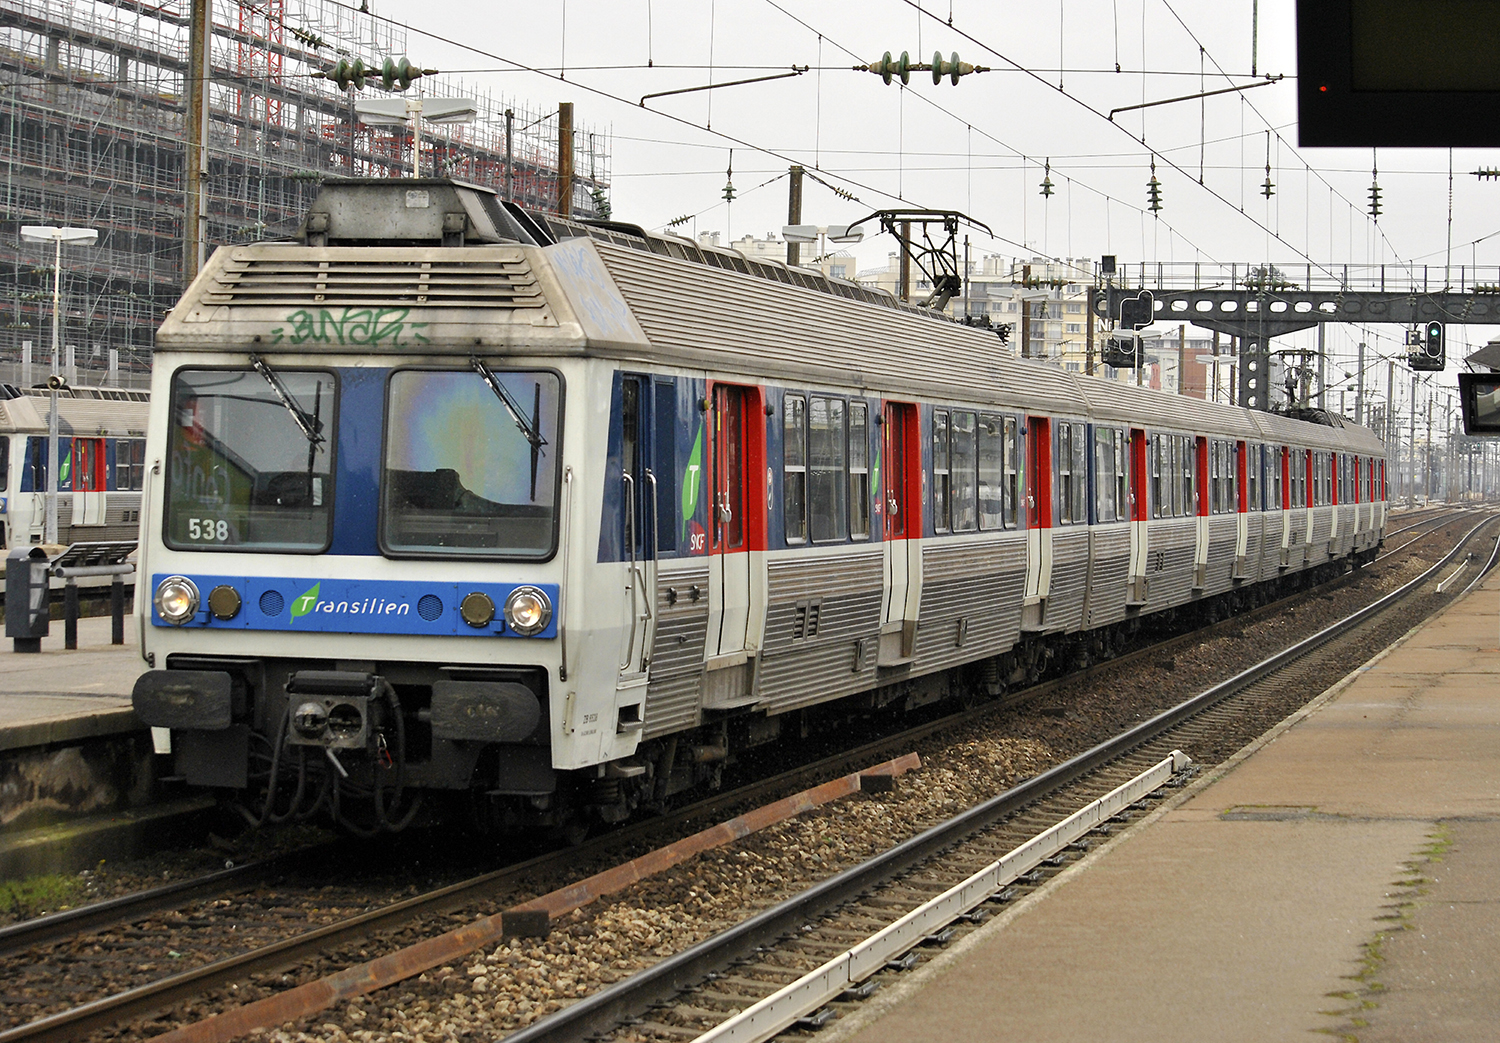 File:SNCF Z 6400 6538 (8577944611).jpg - Wikimedia Commons